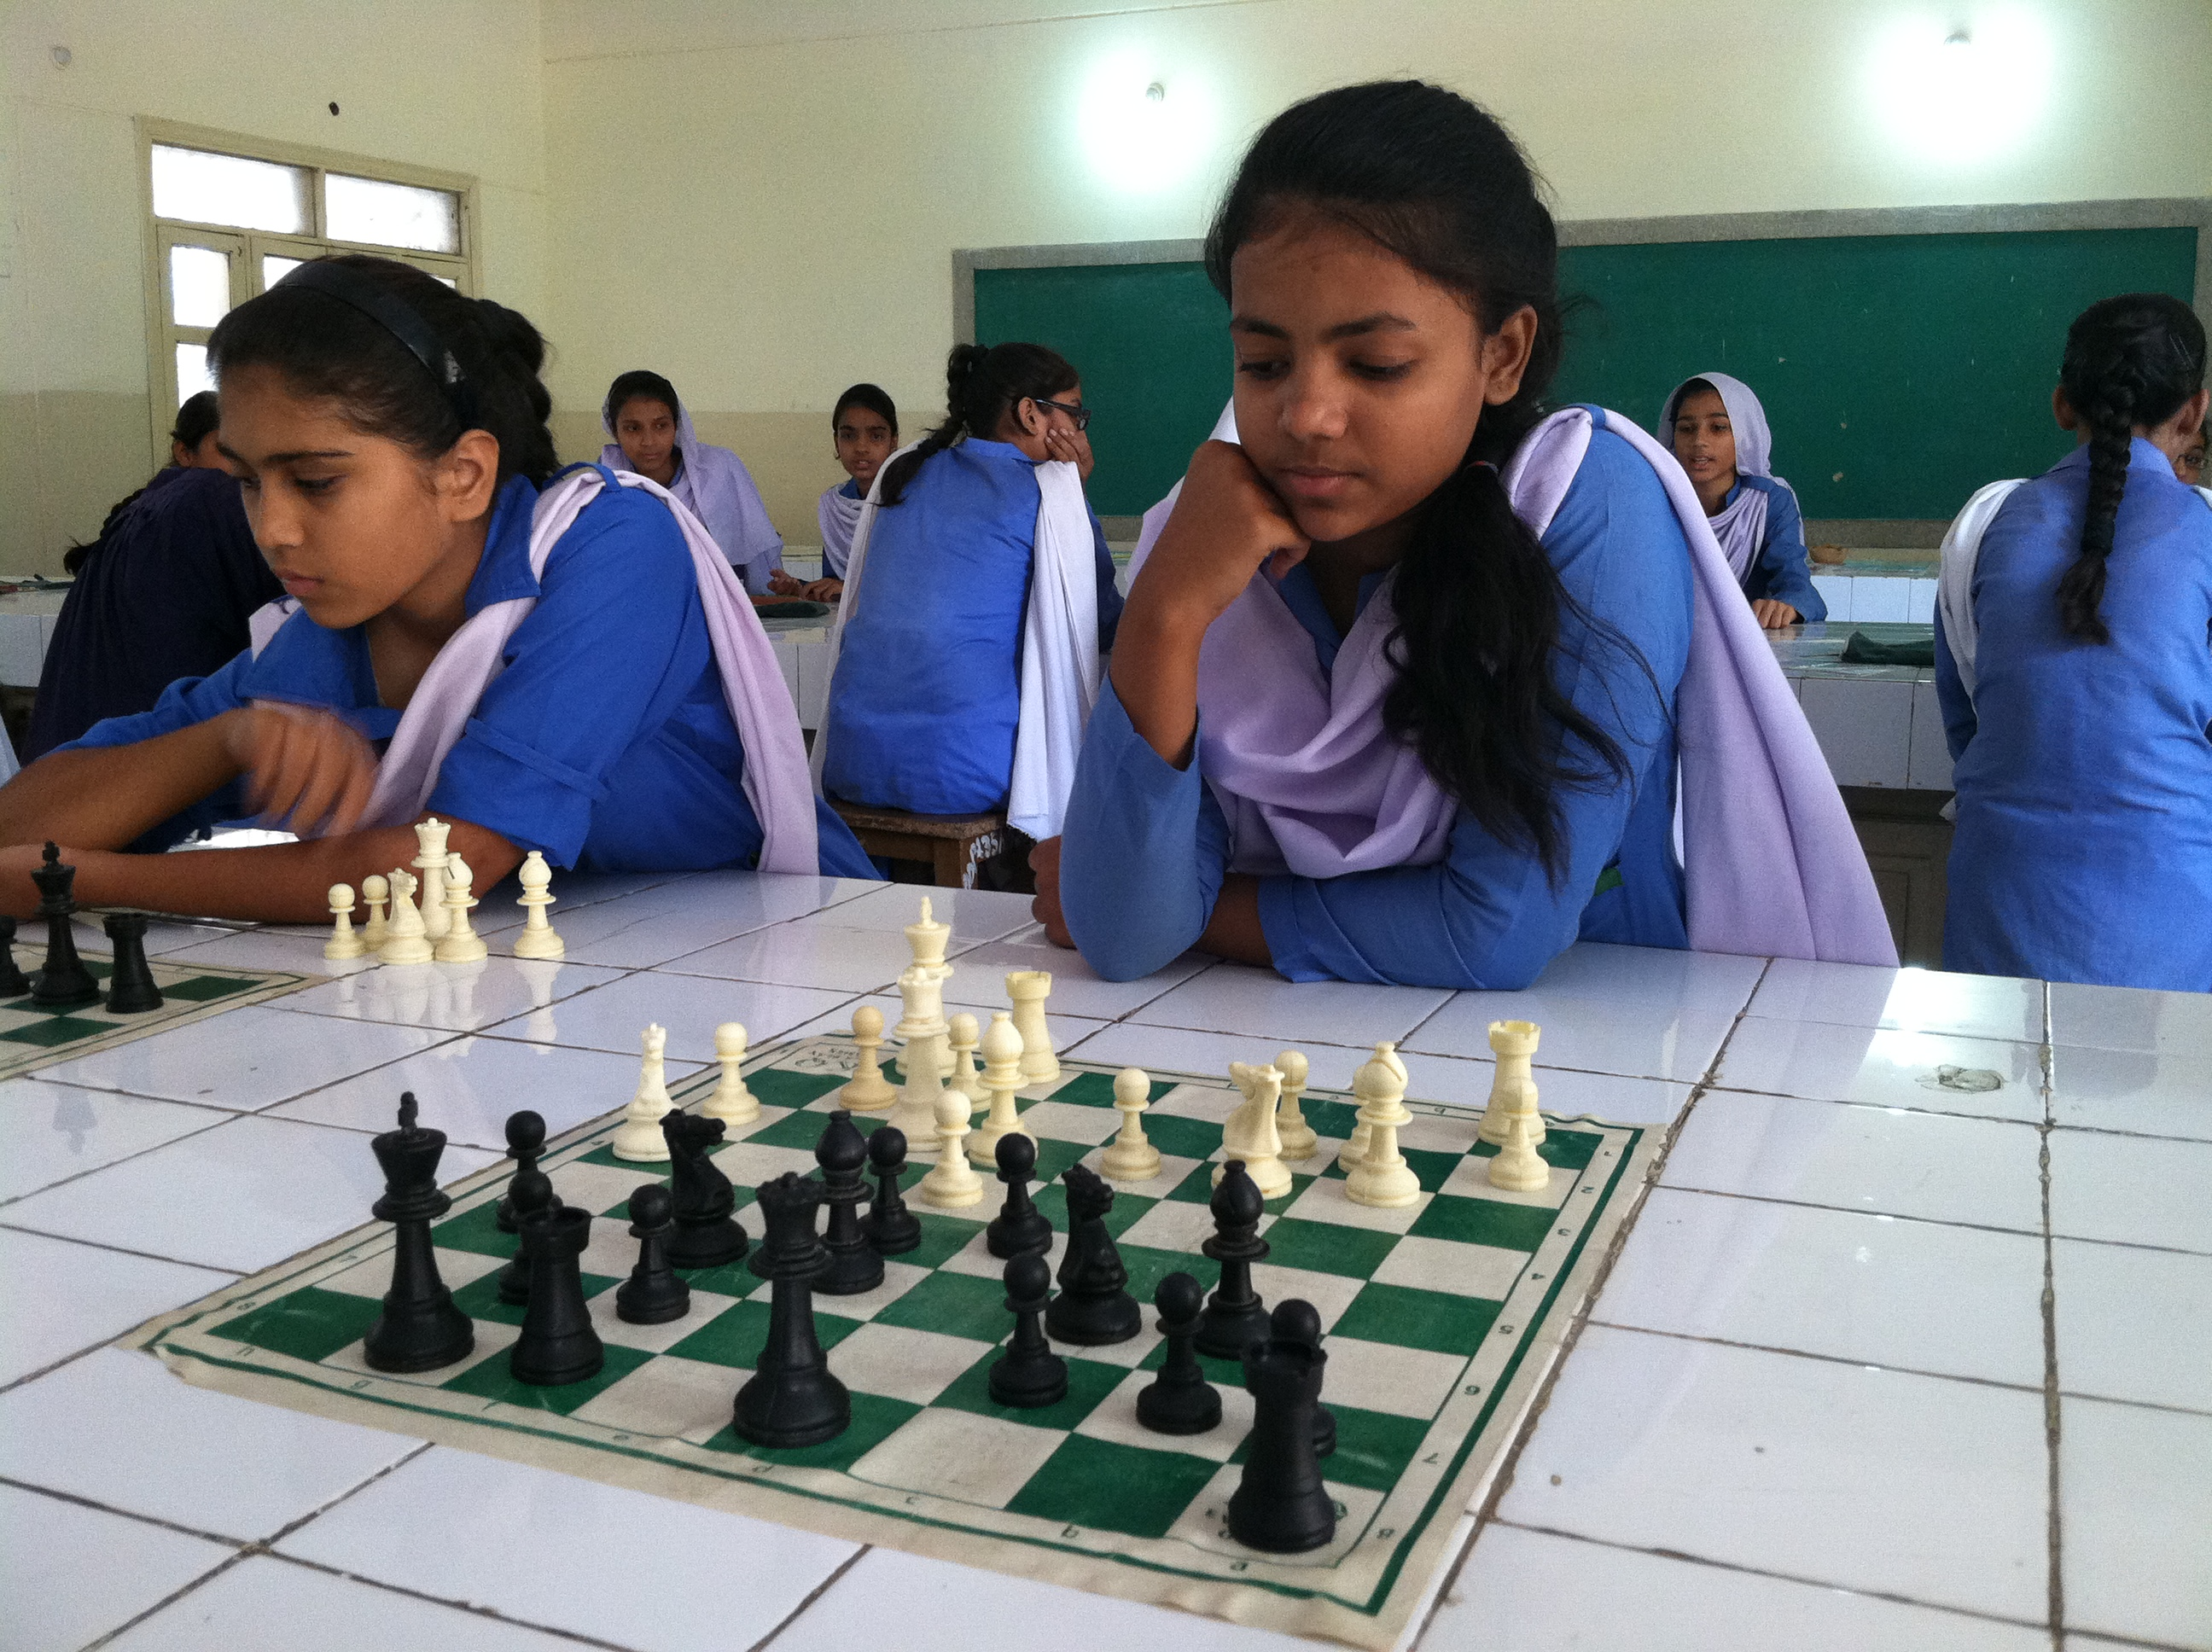 Girls study and compete in chess, just one of several extracurricular activities added to this girls' public school in Pakistan since the Zindagi Trust adopted it in 2007. (Photo: Laura Isensee, News 88.7)